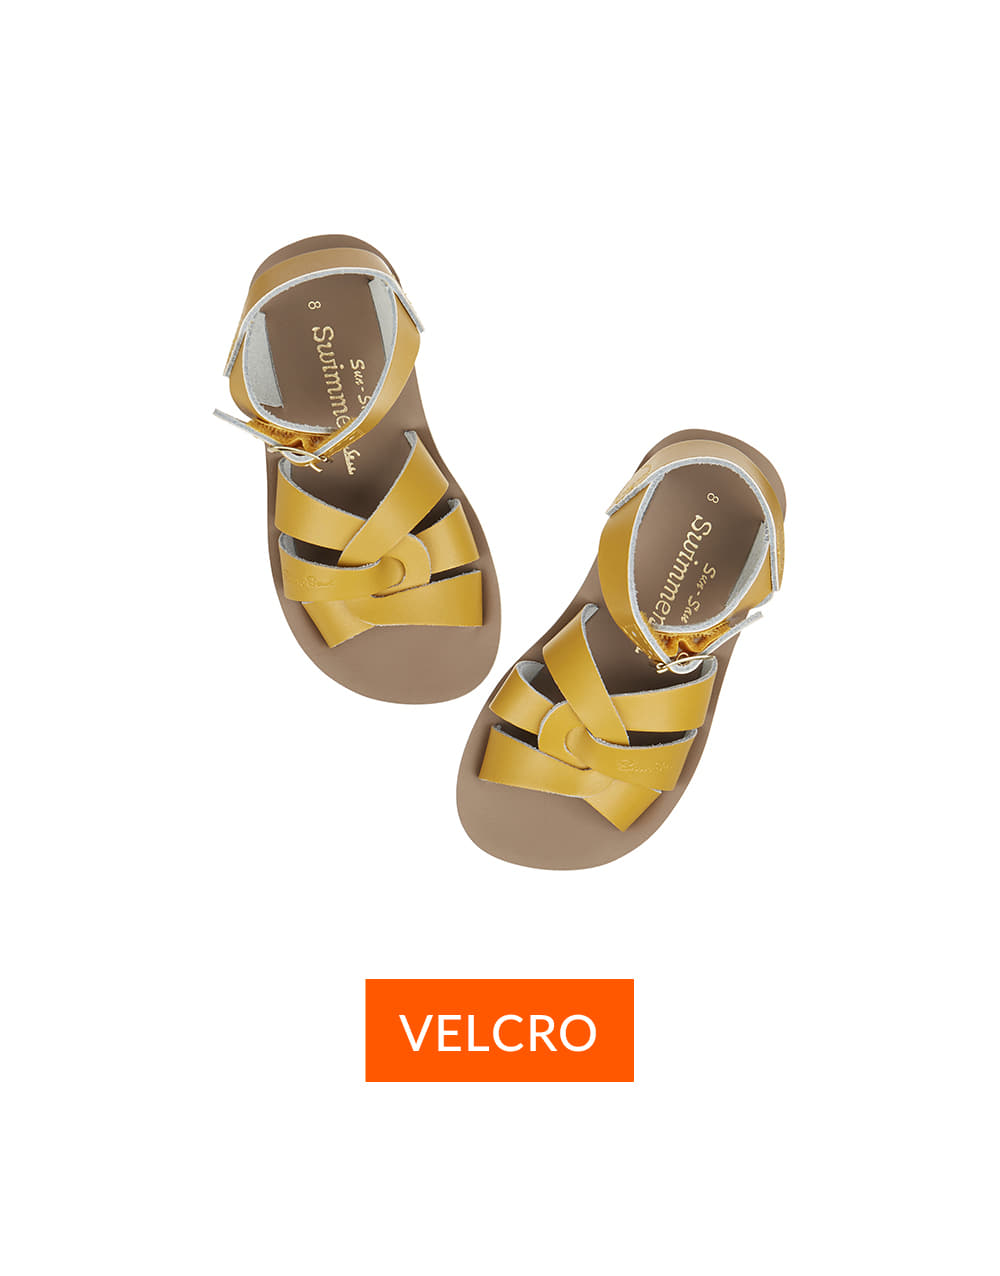 SALT-WATER SANDAL  CHILD VELCRO SWIMMER  Mustard